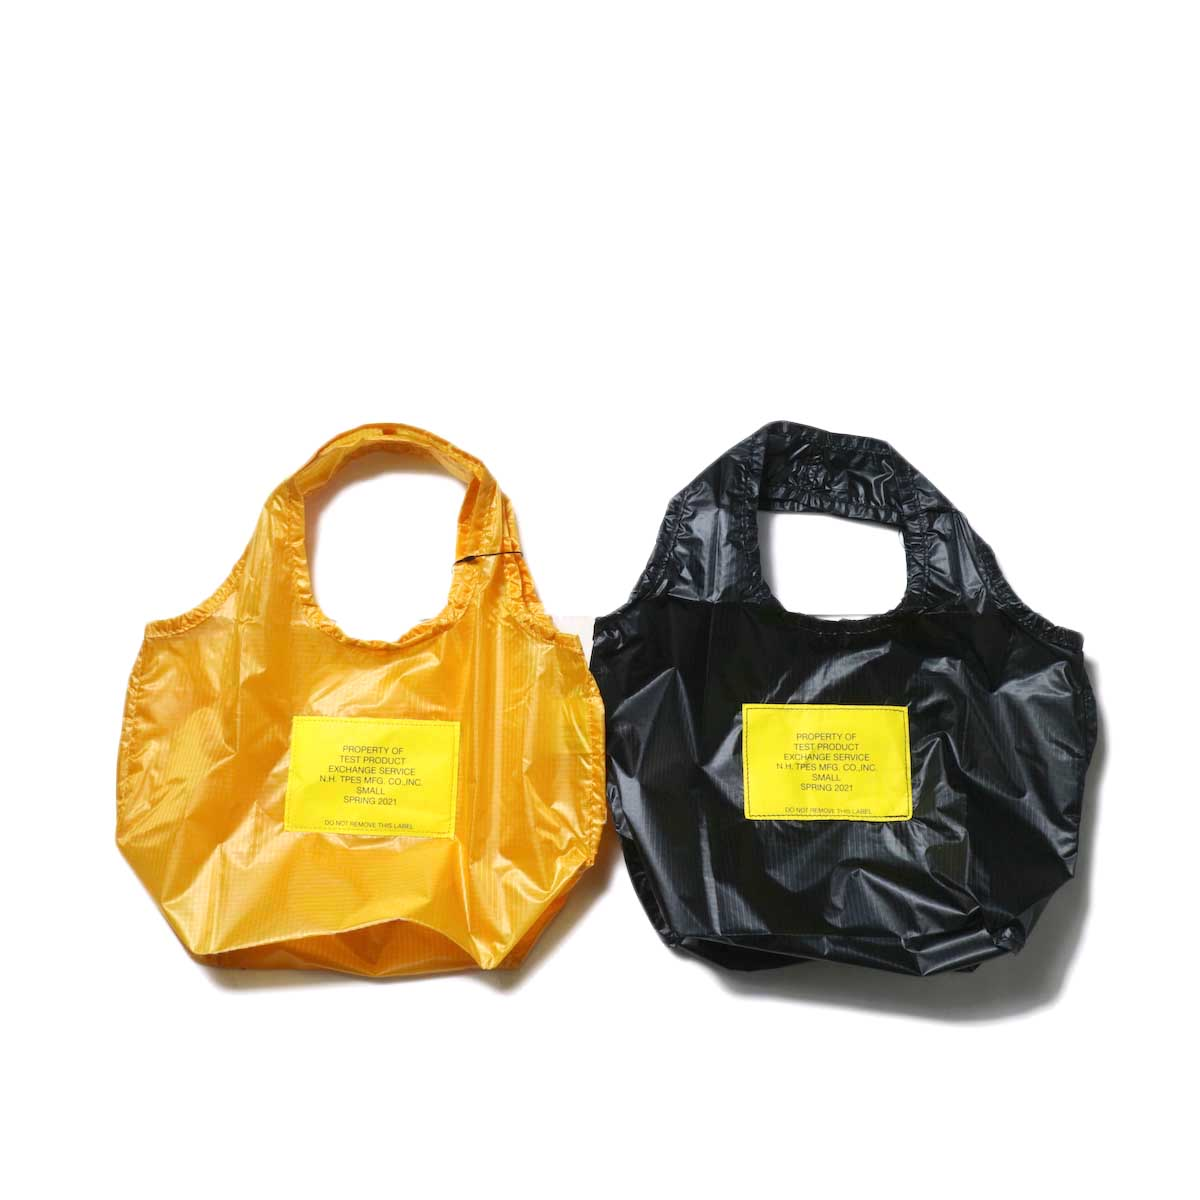 N.HOOLYWOOD / 9211-AC87 pieces BAG (SMALL)正面